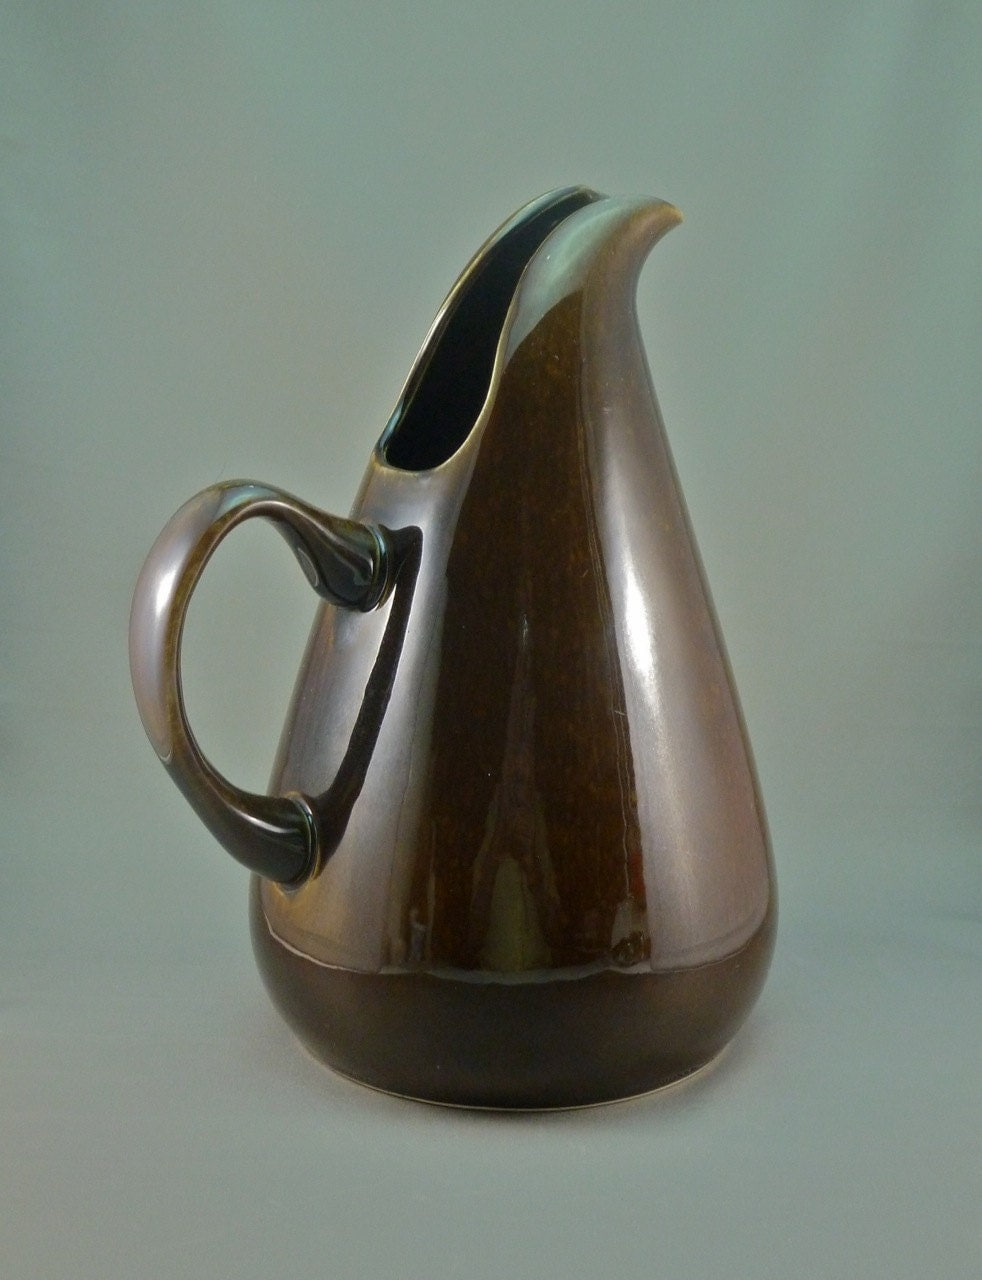 Russel wright american modern tall water jug aka pitcher - Russel wright pitcher ...